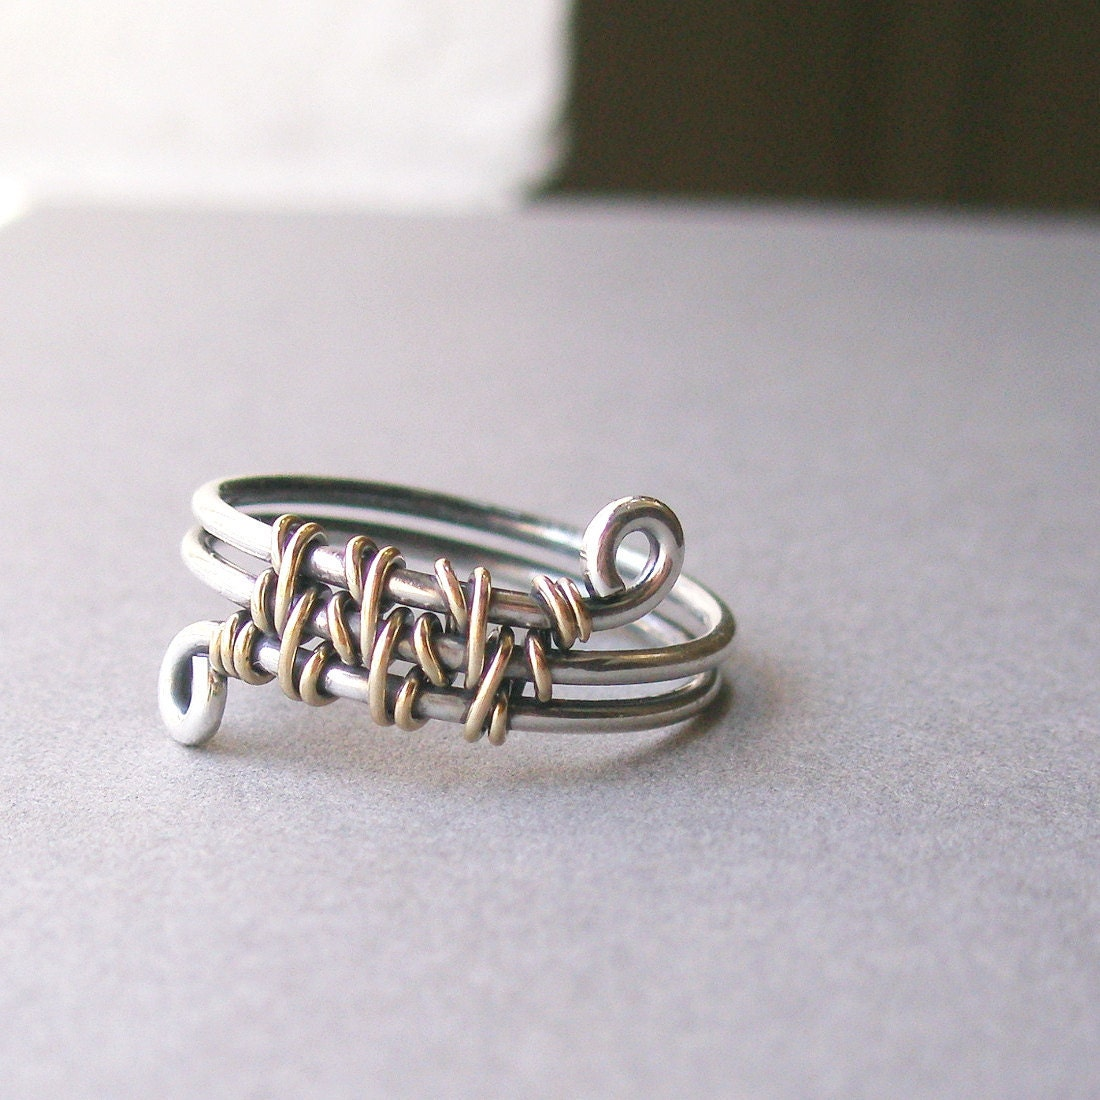 interwoven ring - (U.S. size 9.25) - sterling silver and 12K gold fill